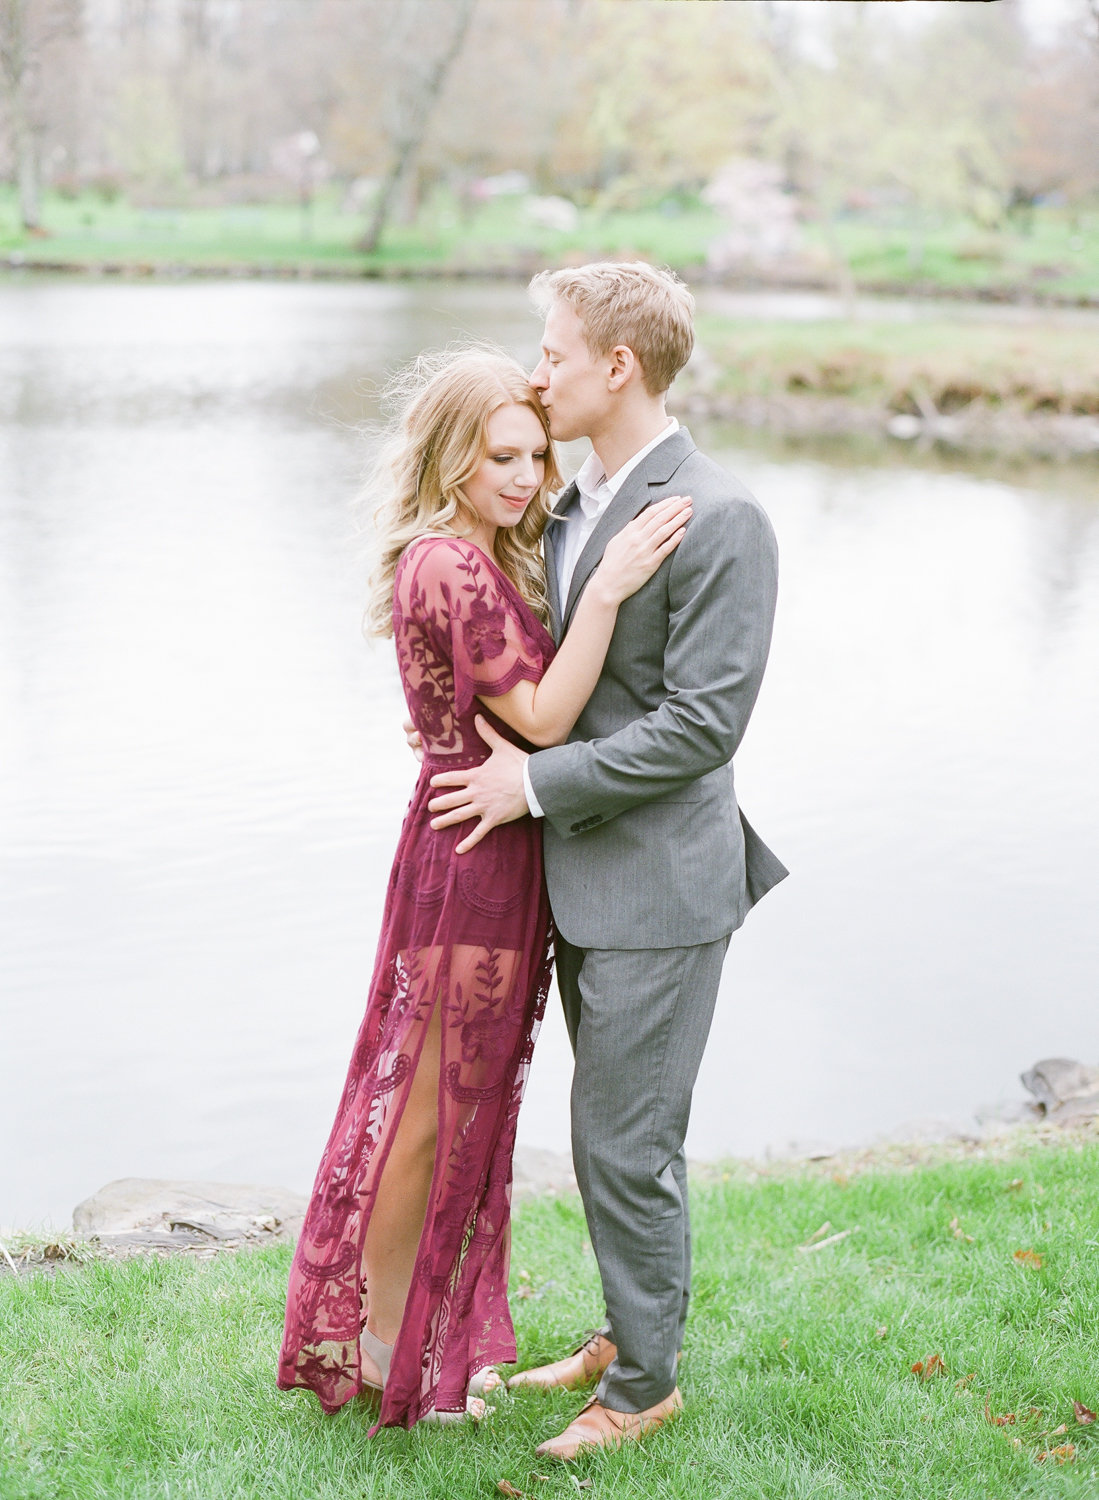 Jacqueline Anne Photography - Amanda and Brent-47.jpg